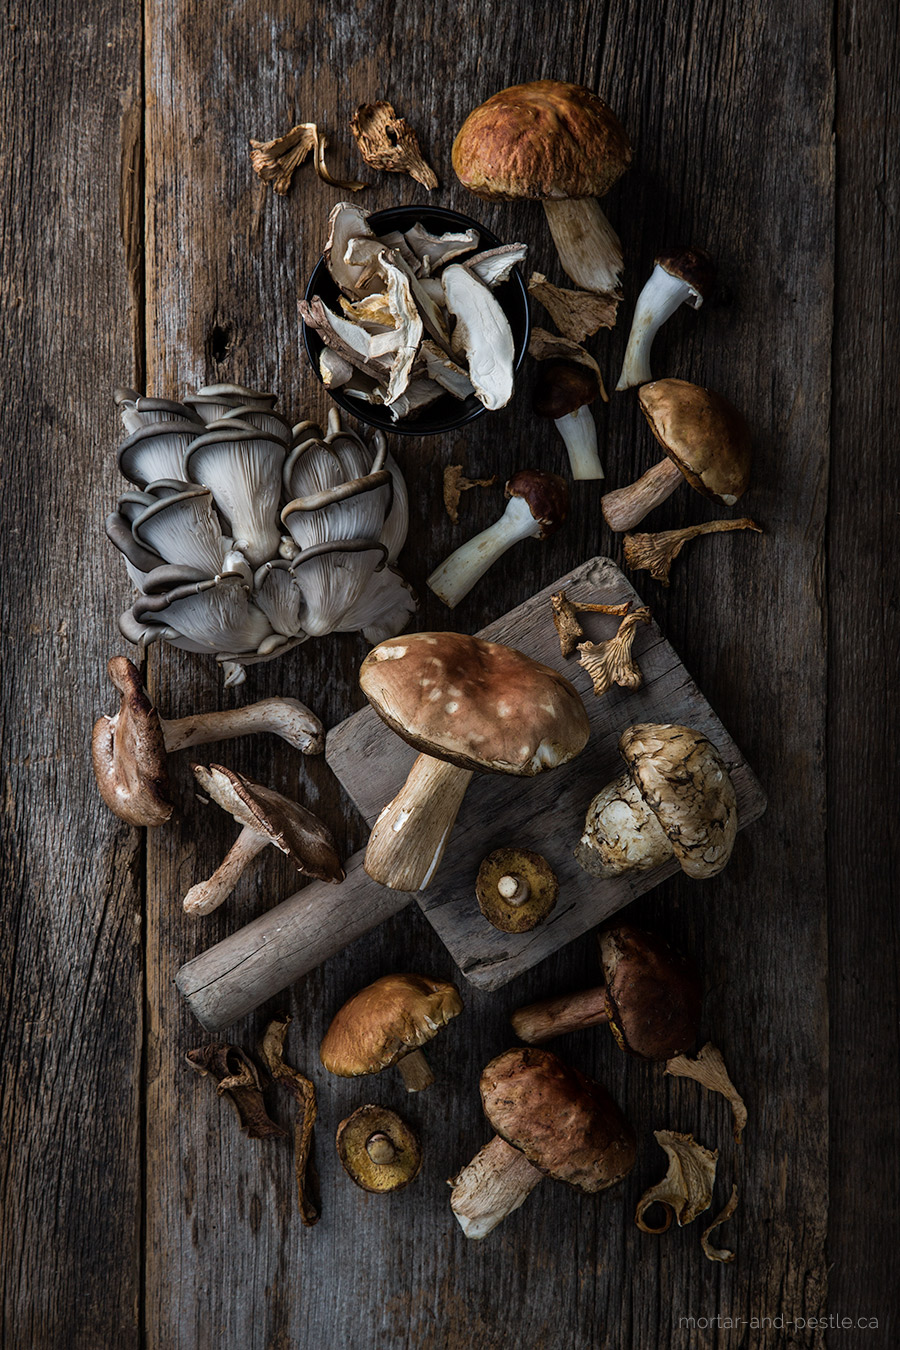 Chicken with wild mushrooms - mortar-and-pestle.ca